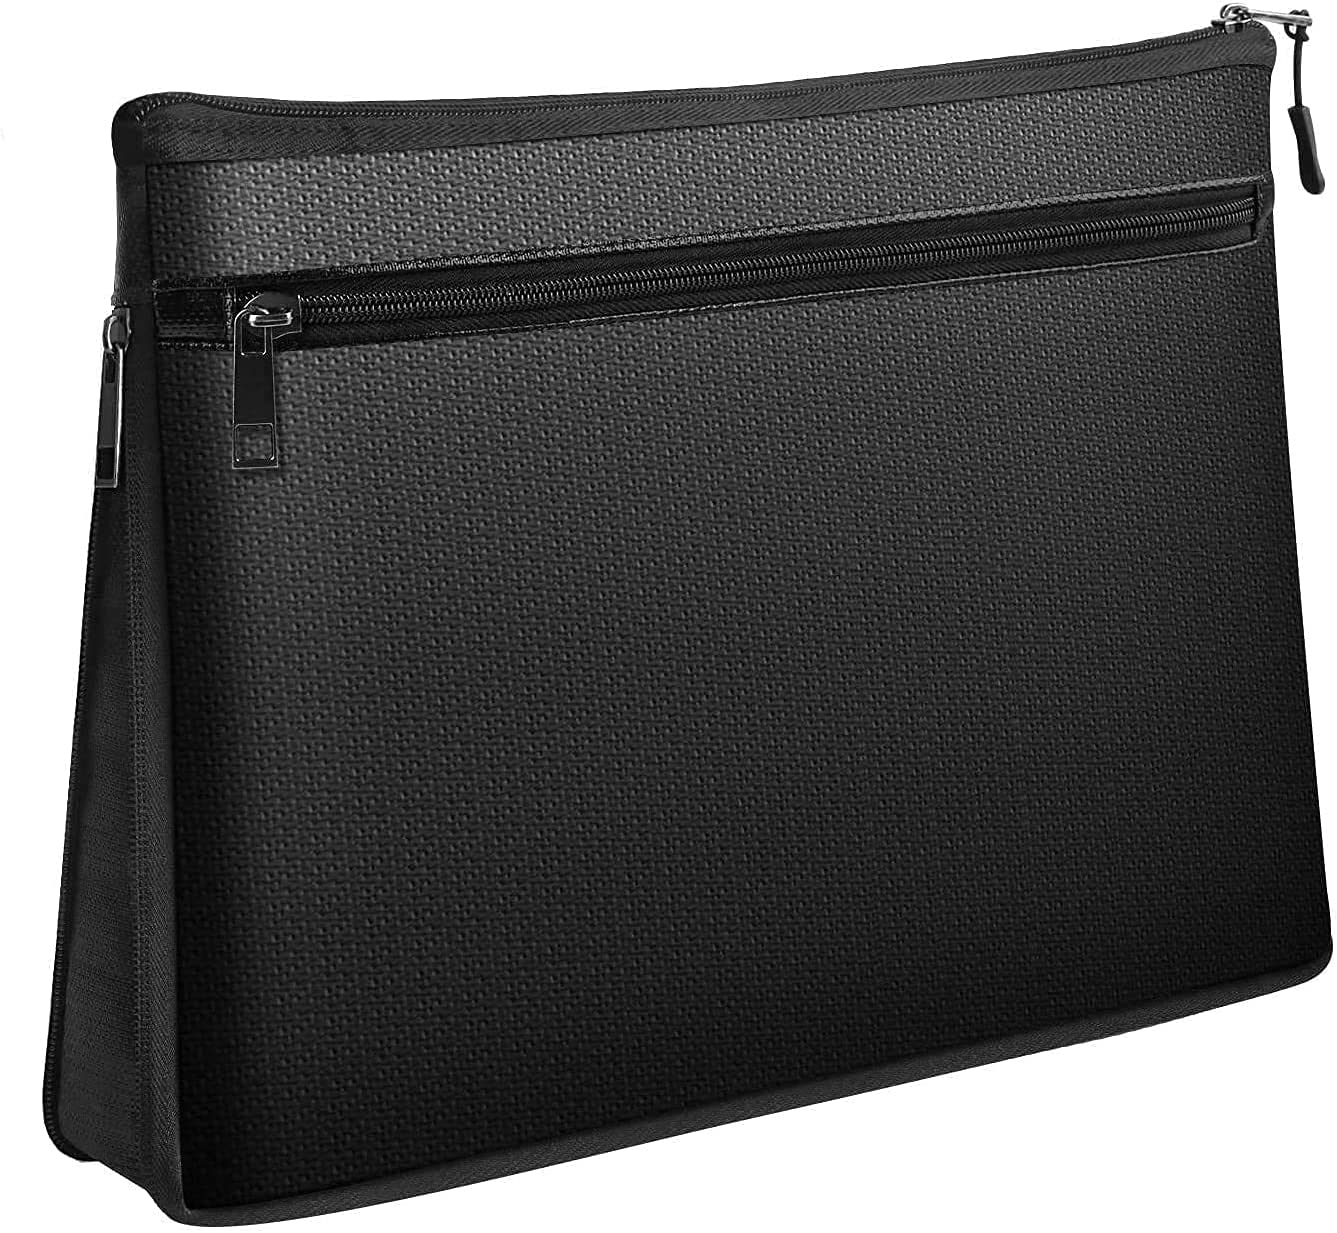 Fireproof Document Bags Large Capacity Thermal (4 Max 80% OFF of Manufacturer direct delivery Layers